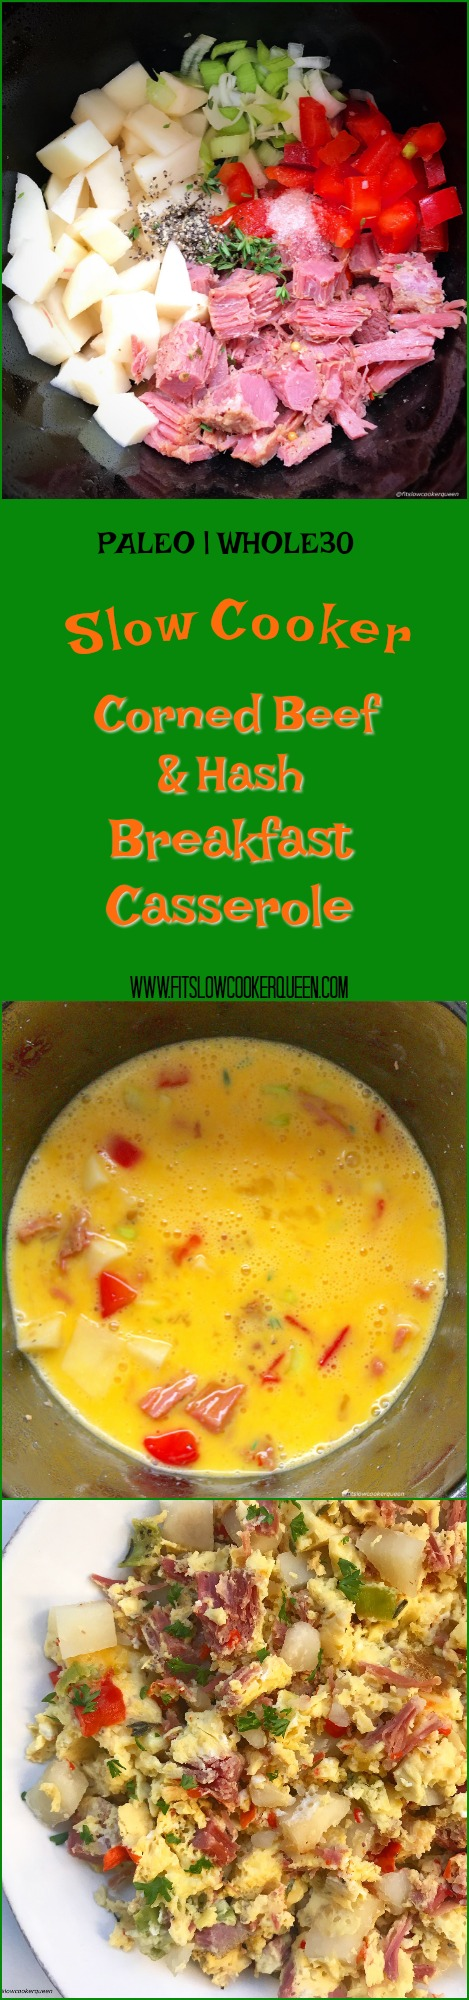 This slow cooker breakfast casserole uses leftover corned beef and potatoes (corned beef and hash) along with whatever vegetables you want to add in. Even though it's egg-based, this tasty meal that can be served for breakfast, lunch, or dinner.